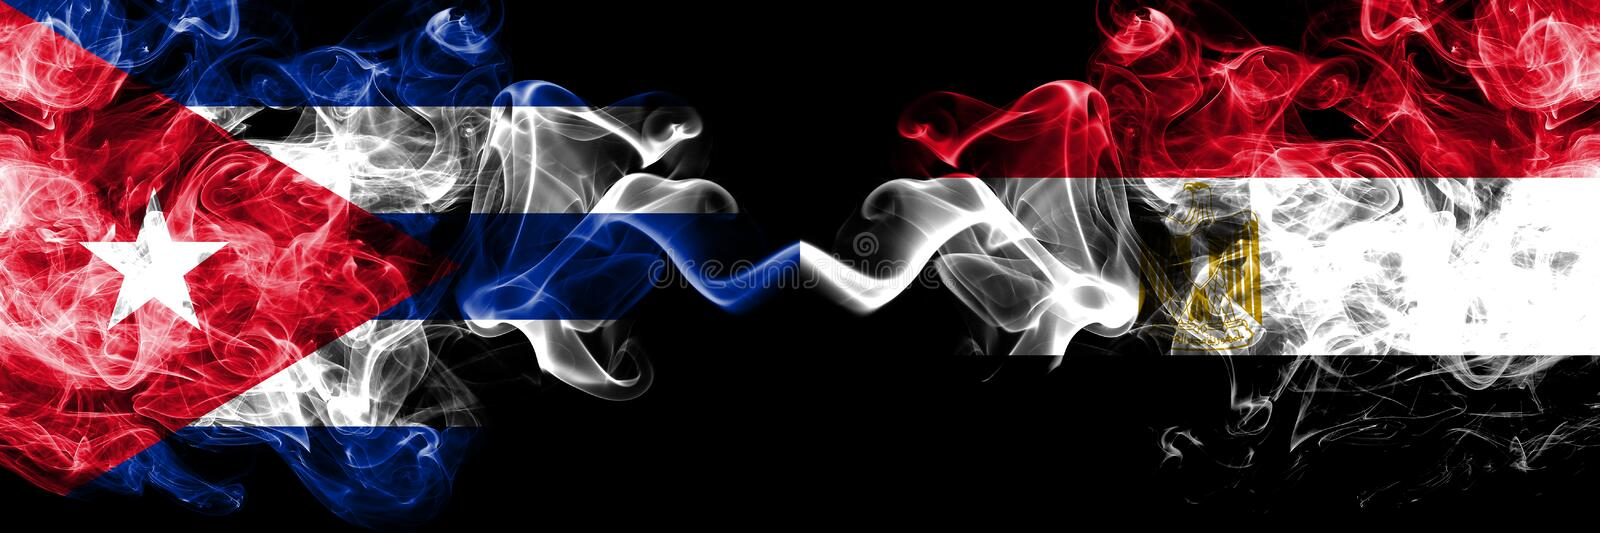 Cuba, Cuban vs Egypt, Egyptian smoky mystic flags placed side by side. Thick colored silky travel abstract smokes banners.  royalty free illustration